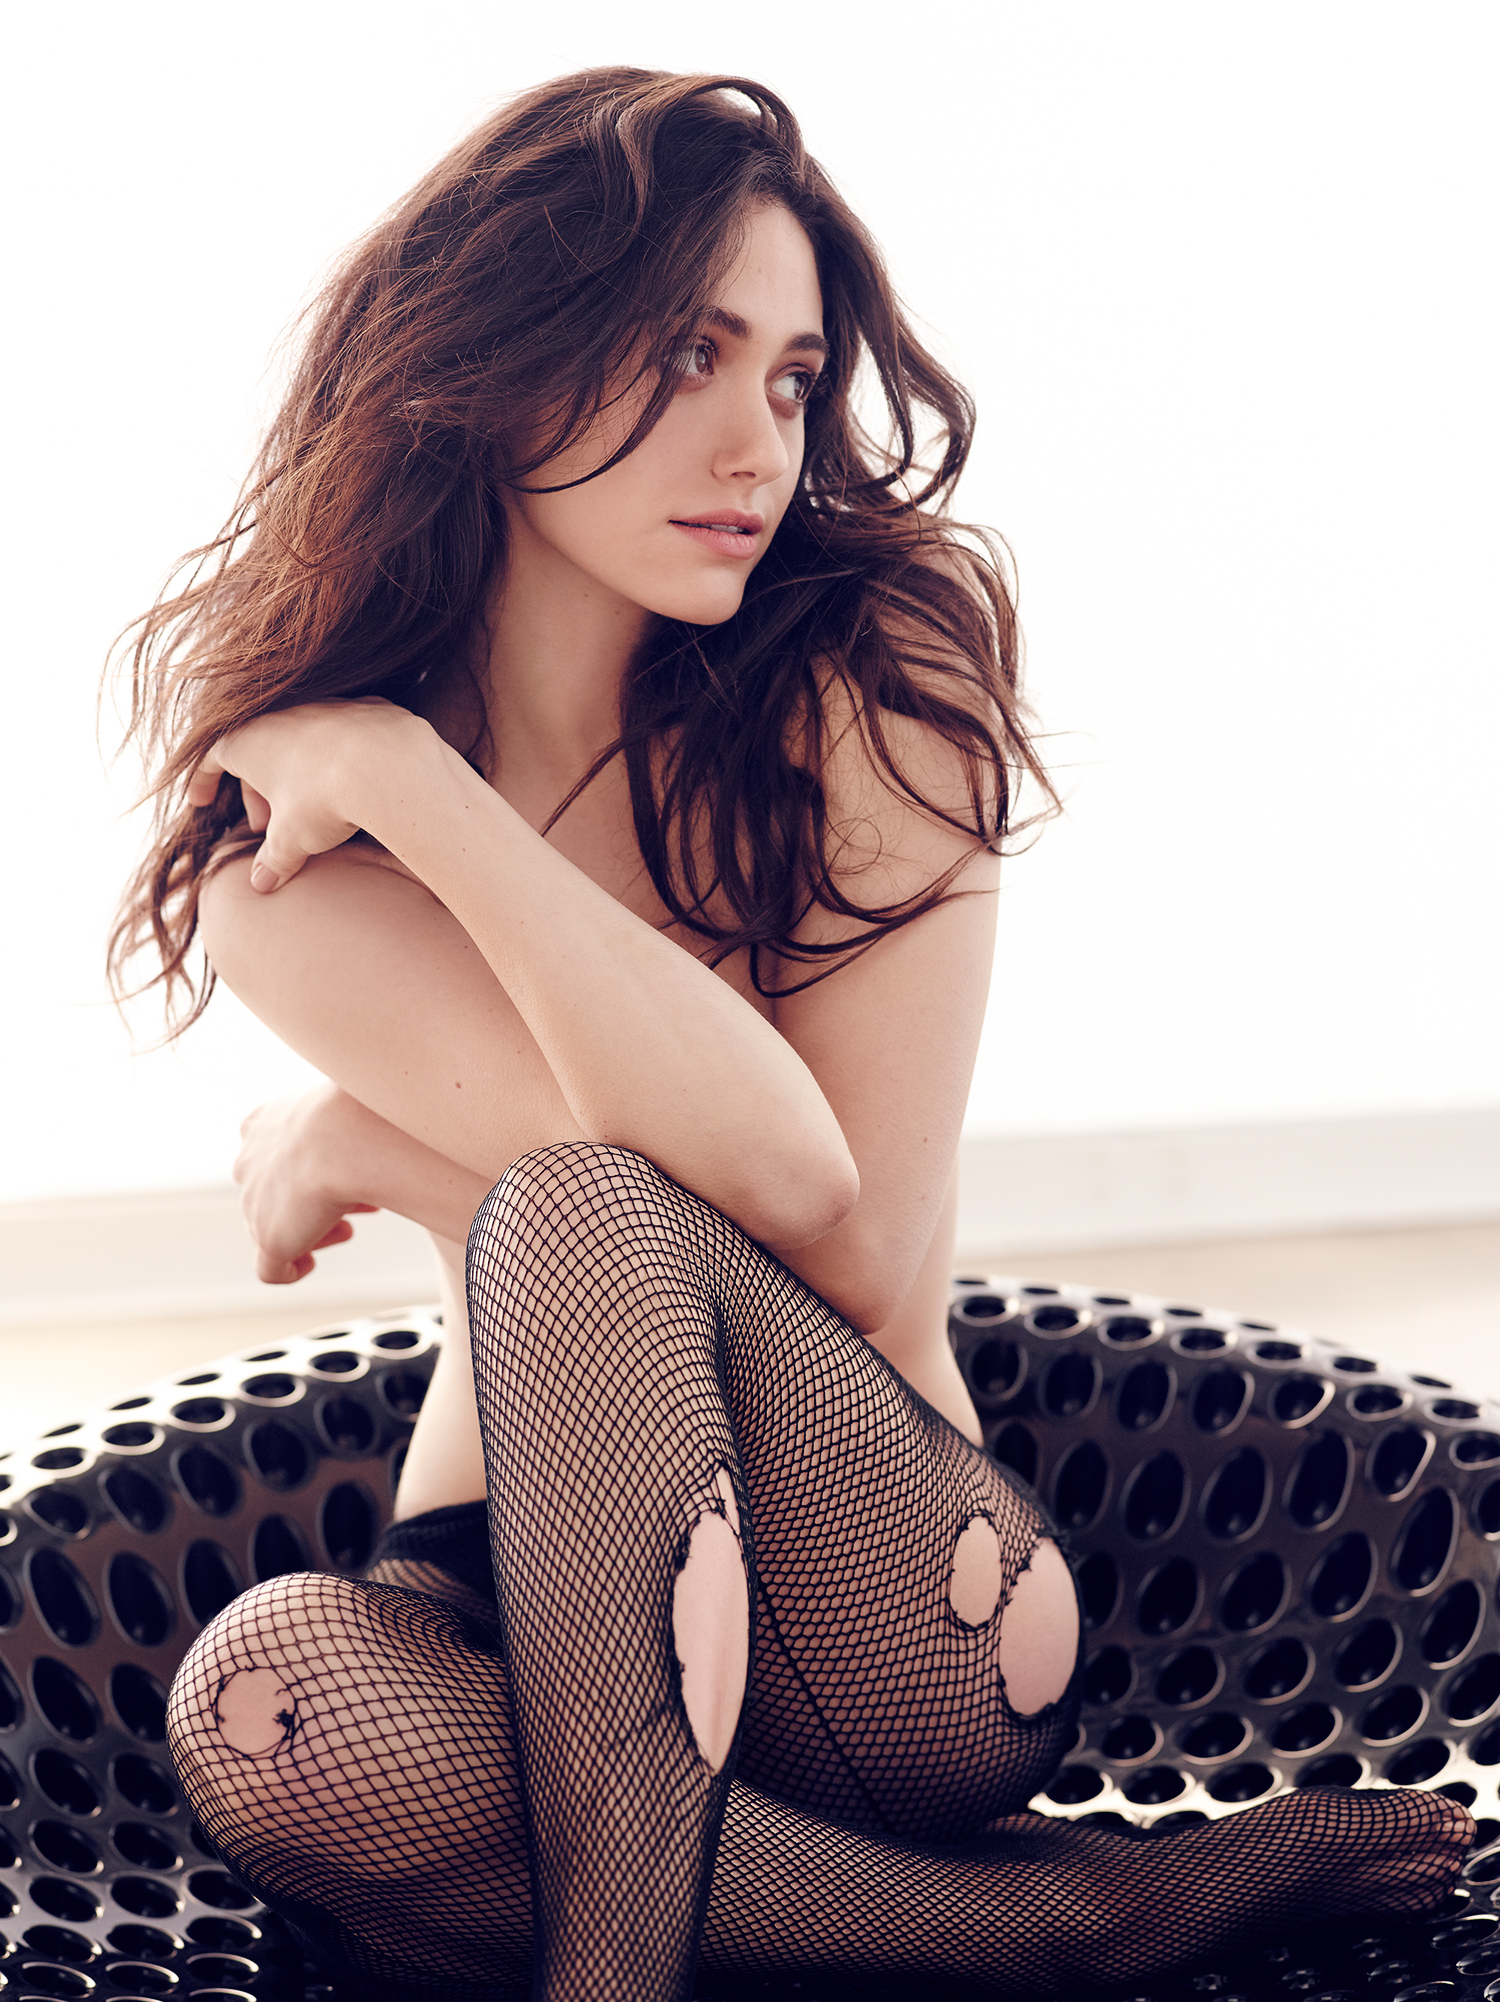 Sexy EMMY ROSSUM Book Full HD | Mujeres Increíbles - YouTube